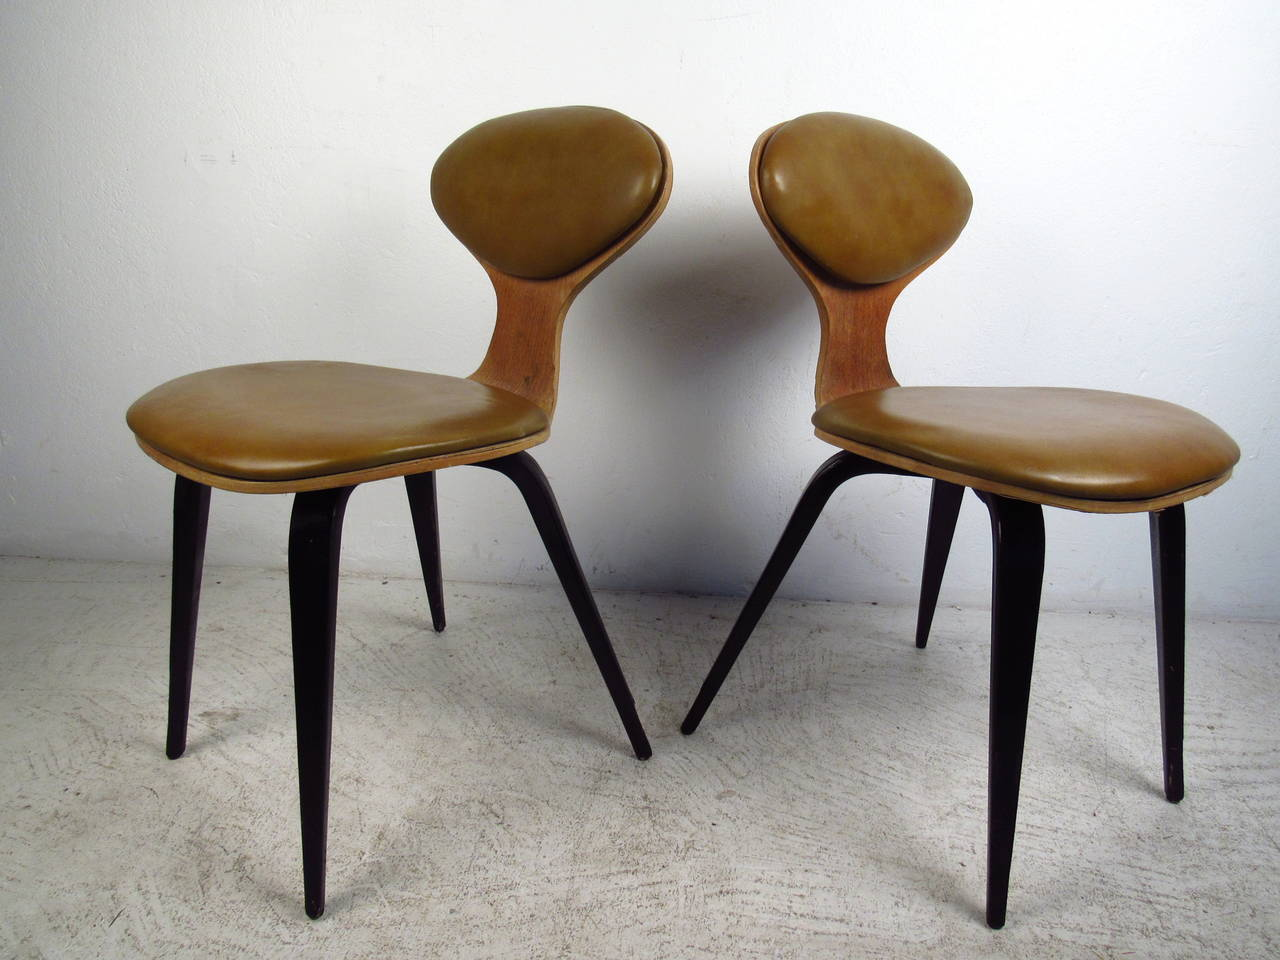 Bent Wood Chairs Pair Of Mid Century Modern Bentwood Chairs In The Style Of